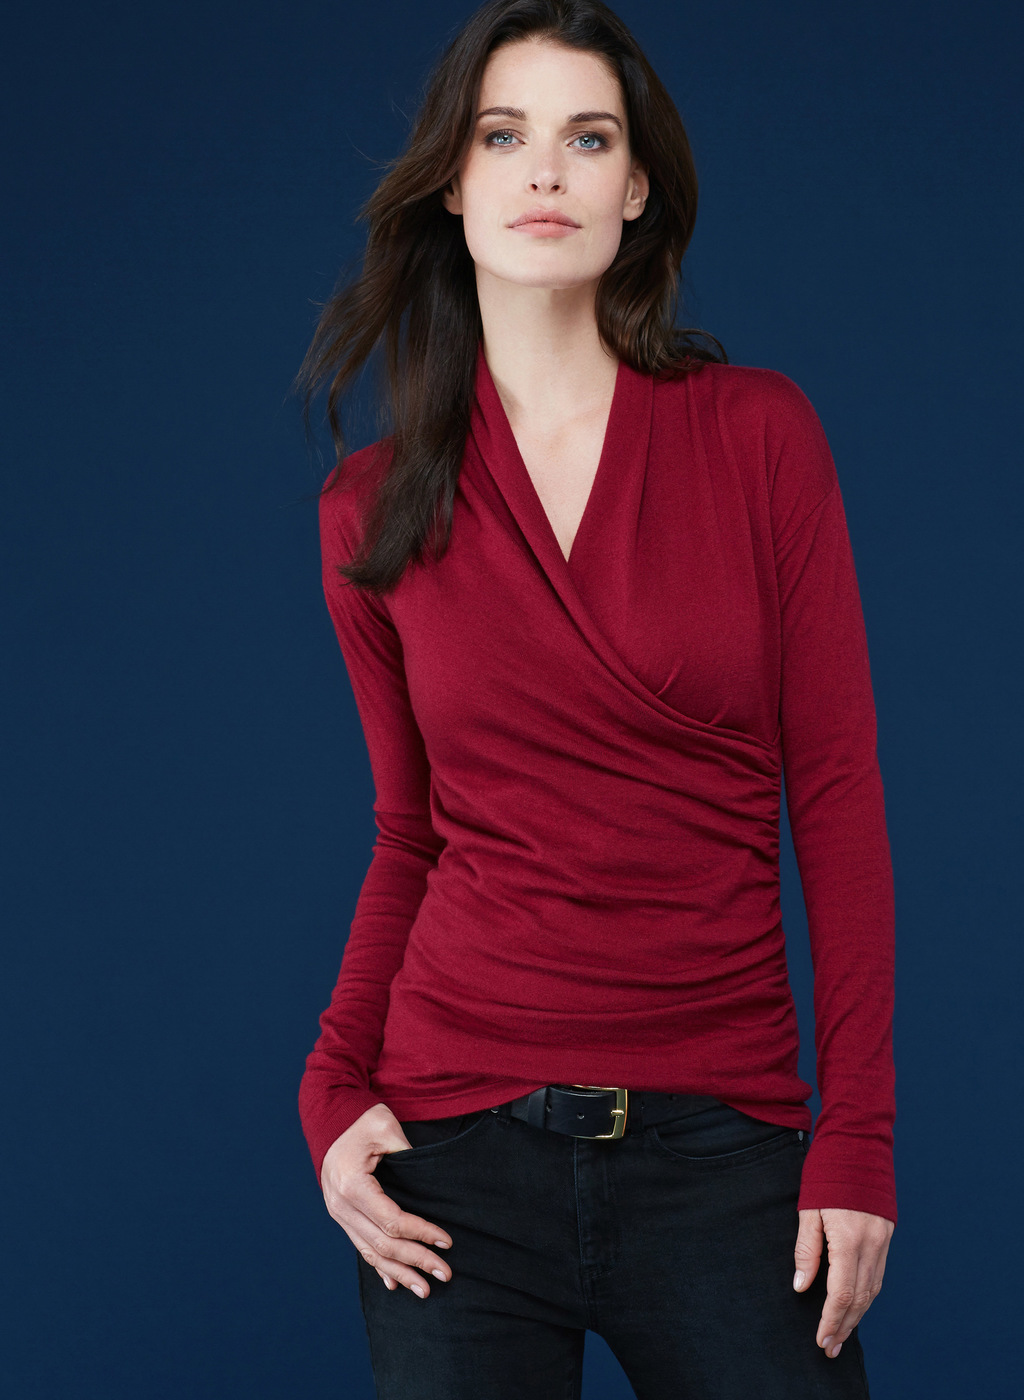 Womenswear Callington Wrap Jumper - neckline: v-neck; pattern: plain; style: faux wrap/wrap; predominant colour: burgundy; occasions: casual; length: standard; fibres: wool - mix; fit: slim fit; sleeve length: long sleeve; sleeve style: standard; texture group: knits/crochet; pattern type: knitted - other; season: a/w 2016; wardrobe: highlight